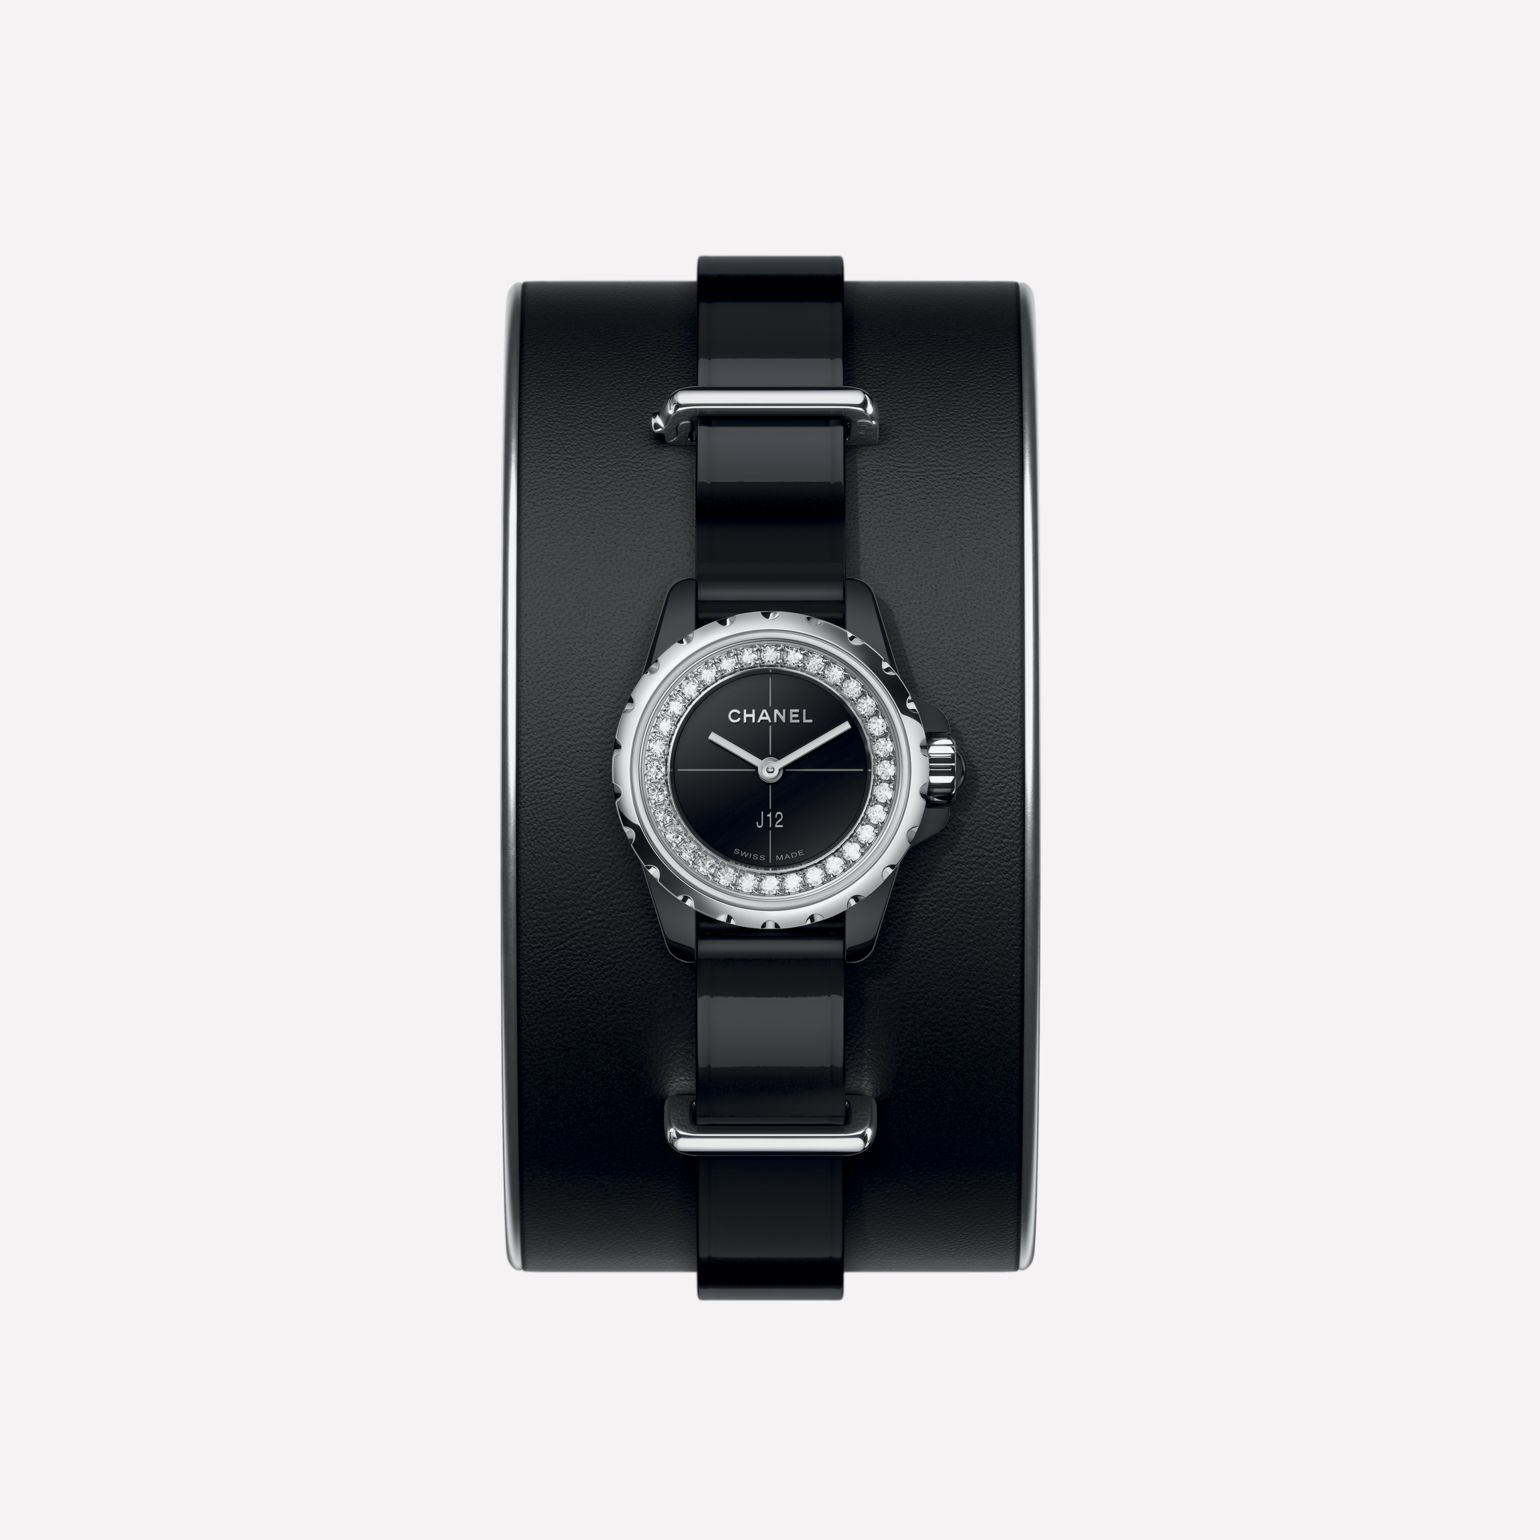 J12·XS Watch, 19 mm  Small black leather cuff, black highly resistant ceramic and steel, brilliant-cut diamond flange